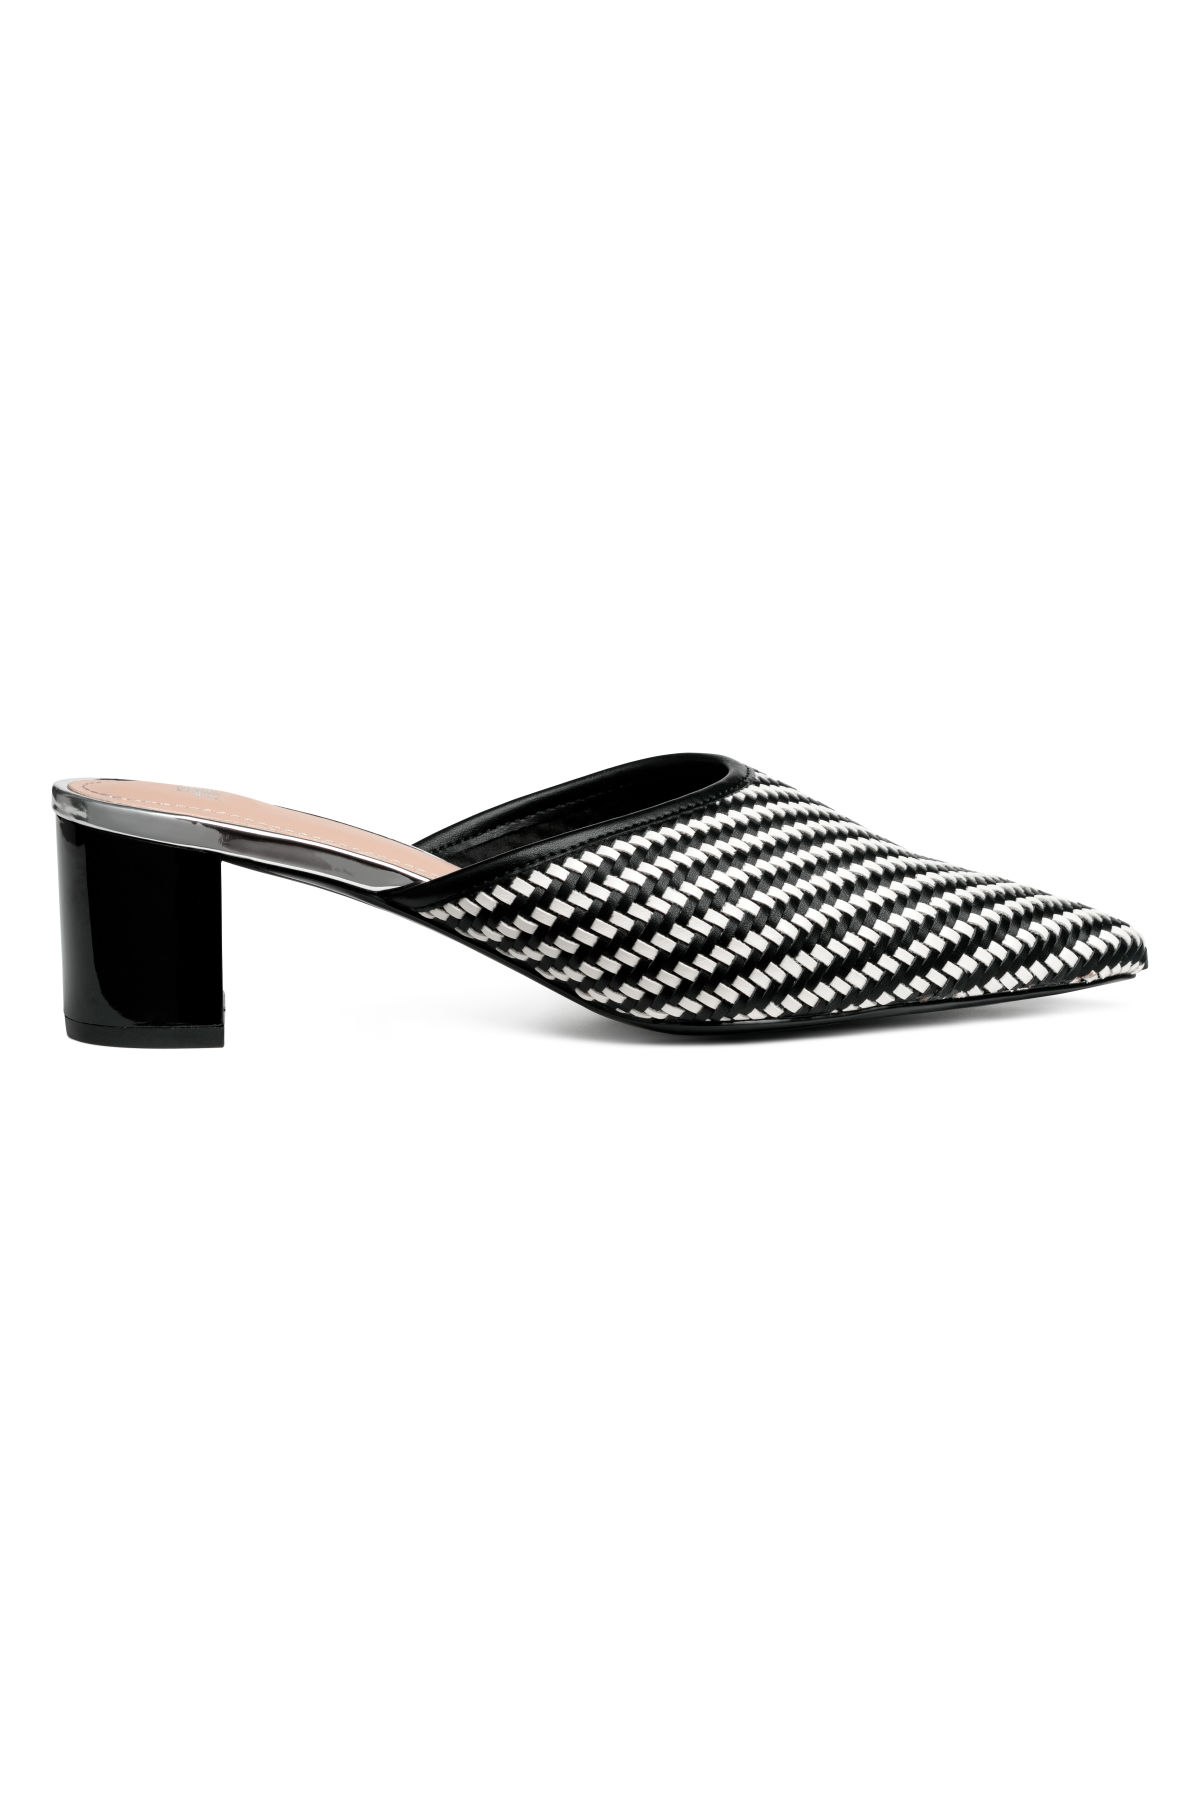 The Find - Black & White Mules Under $40